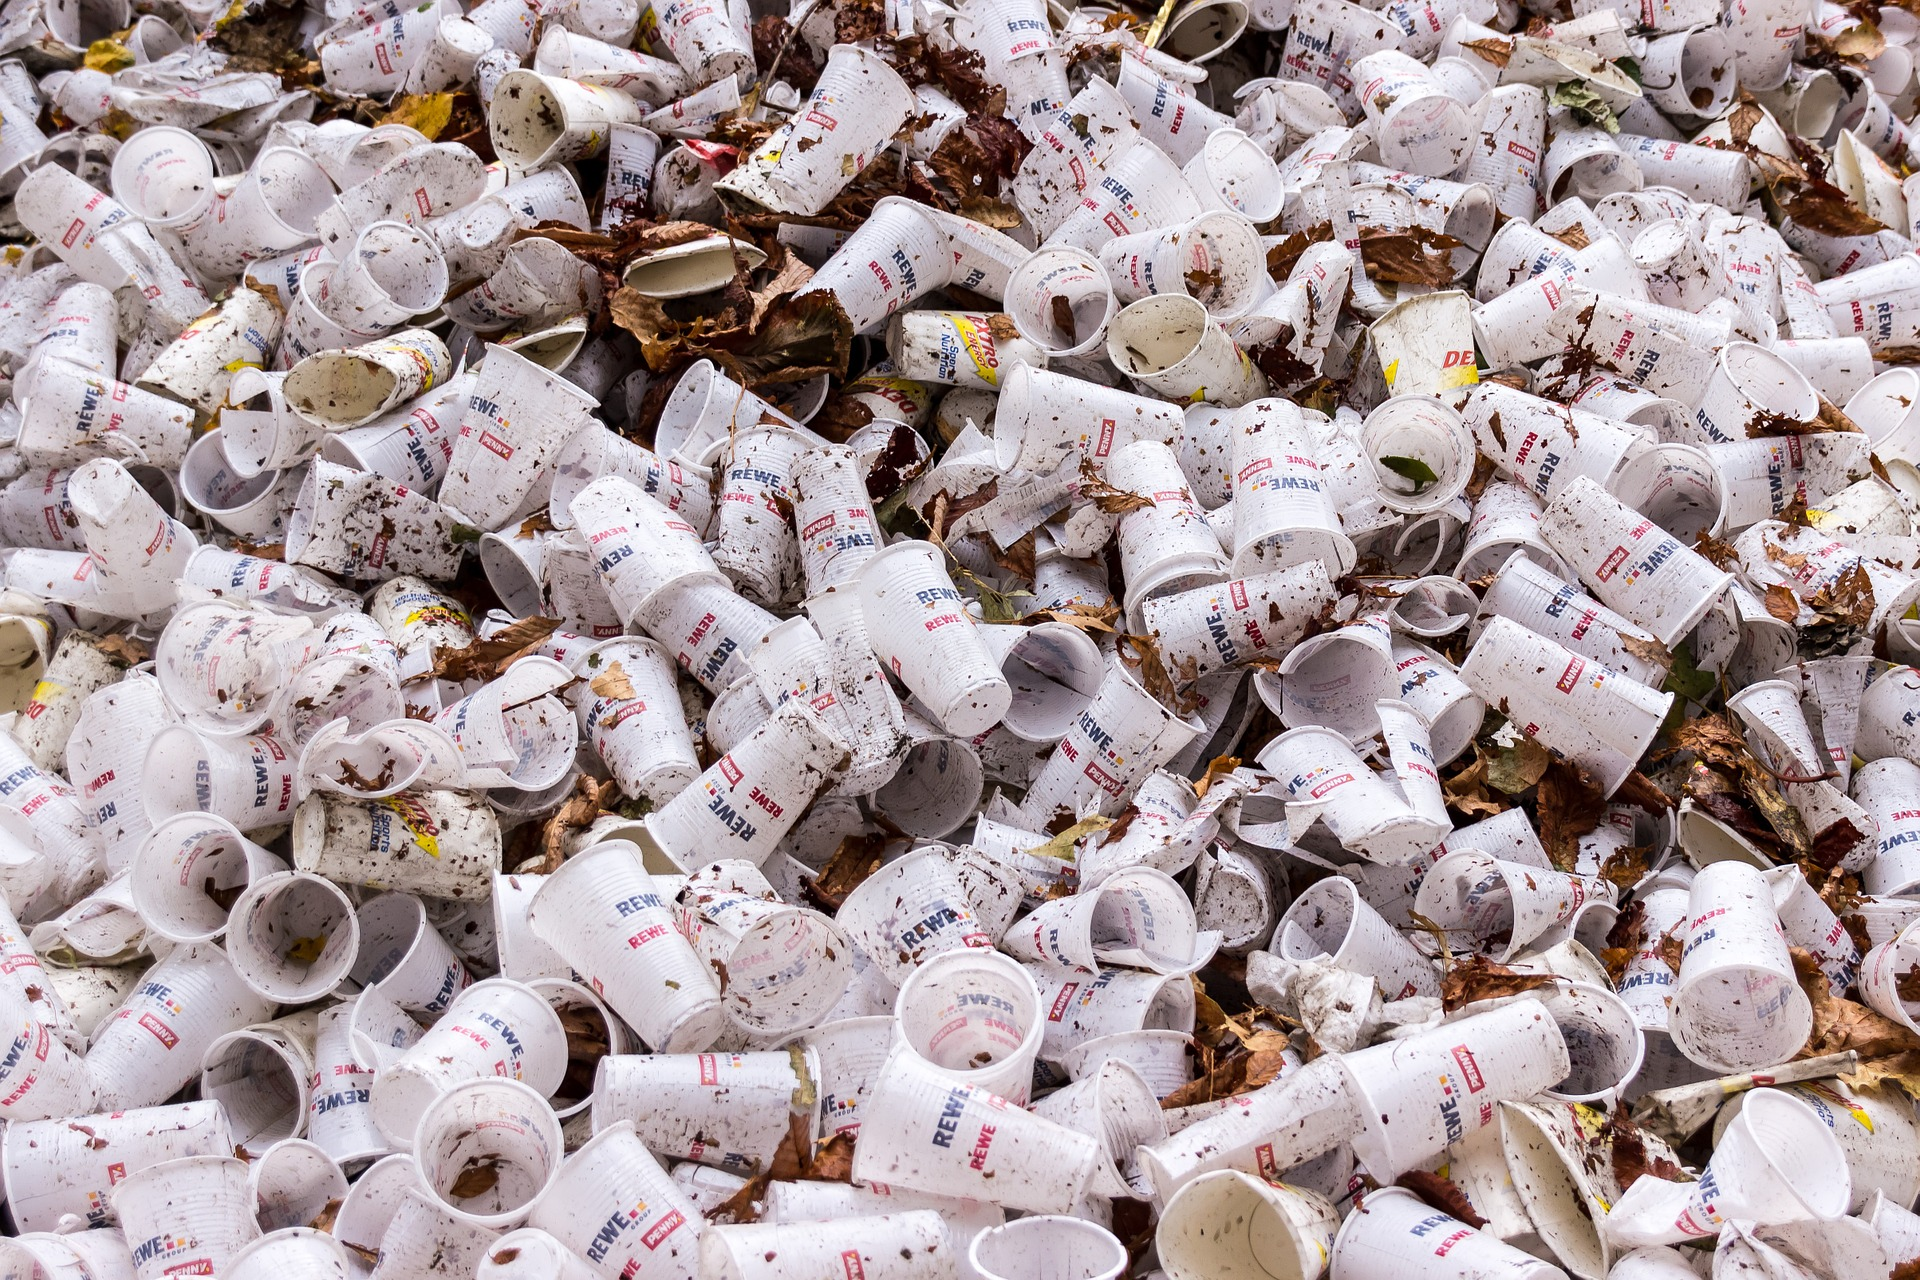 A pile of plastic cups in landfill